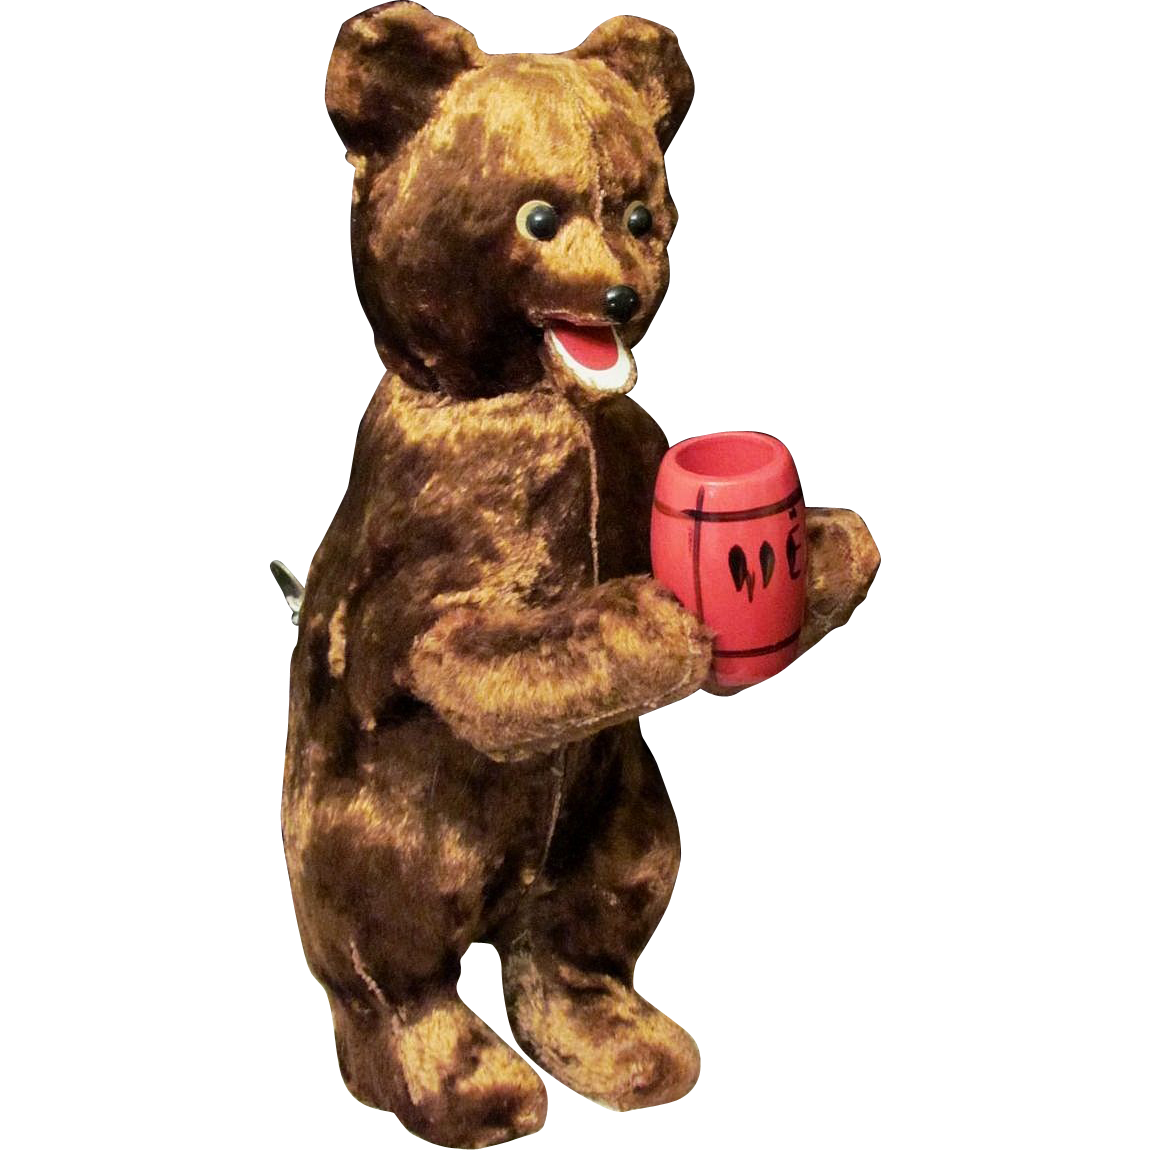 Russian bear png. Vintage wind up key